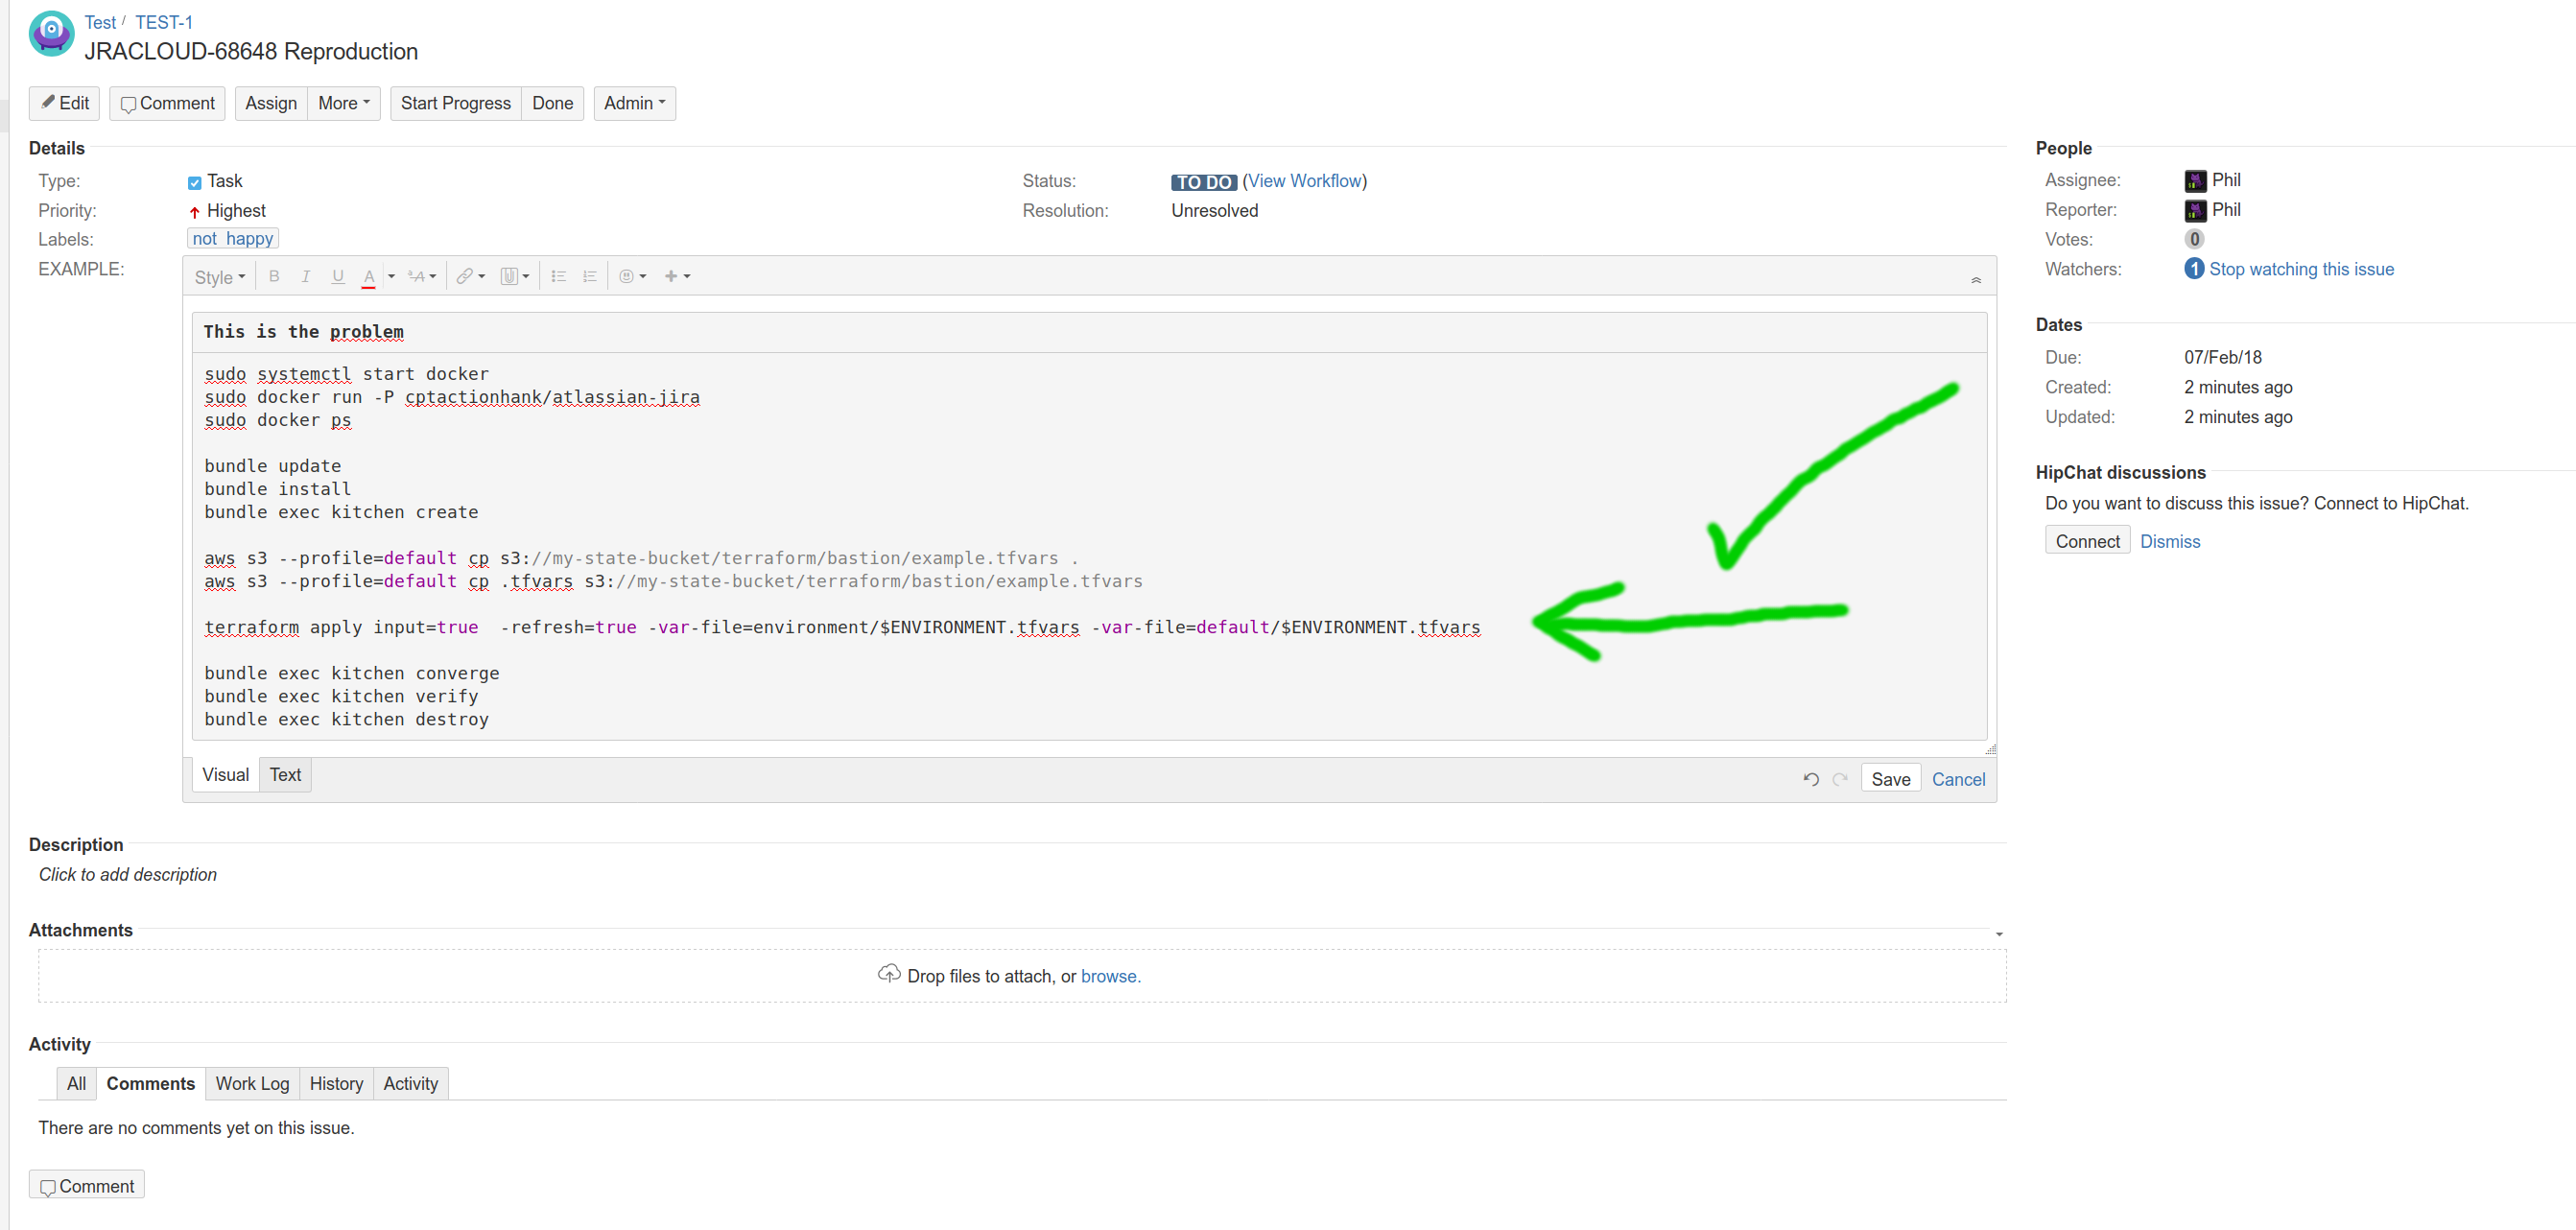 JRACLOUD-68648] Allow for width control of the JIRA Issue View in